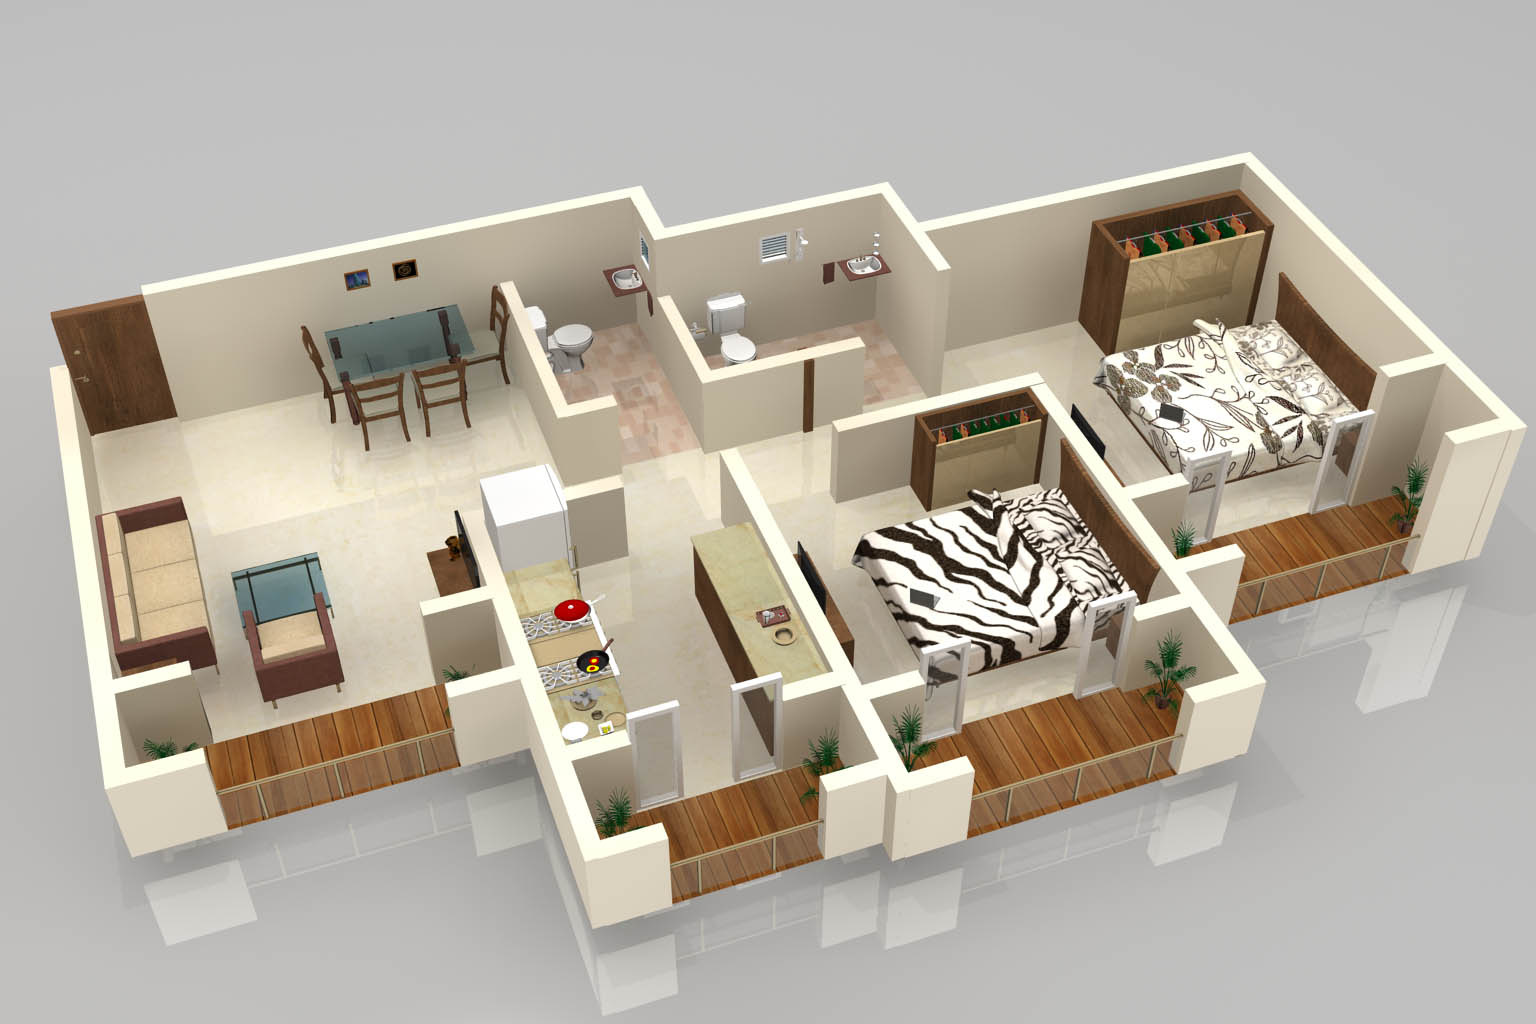 3d floor plan by atul gupta at Floor plan 3d download